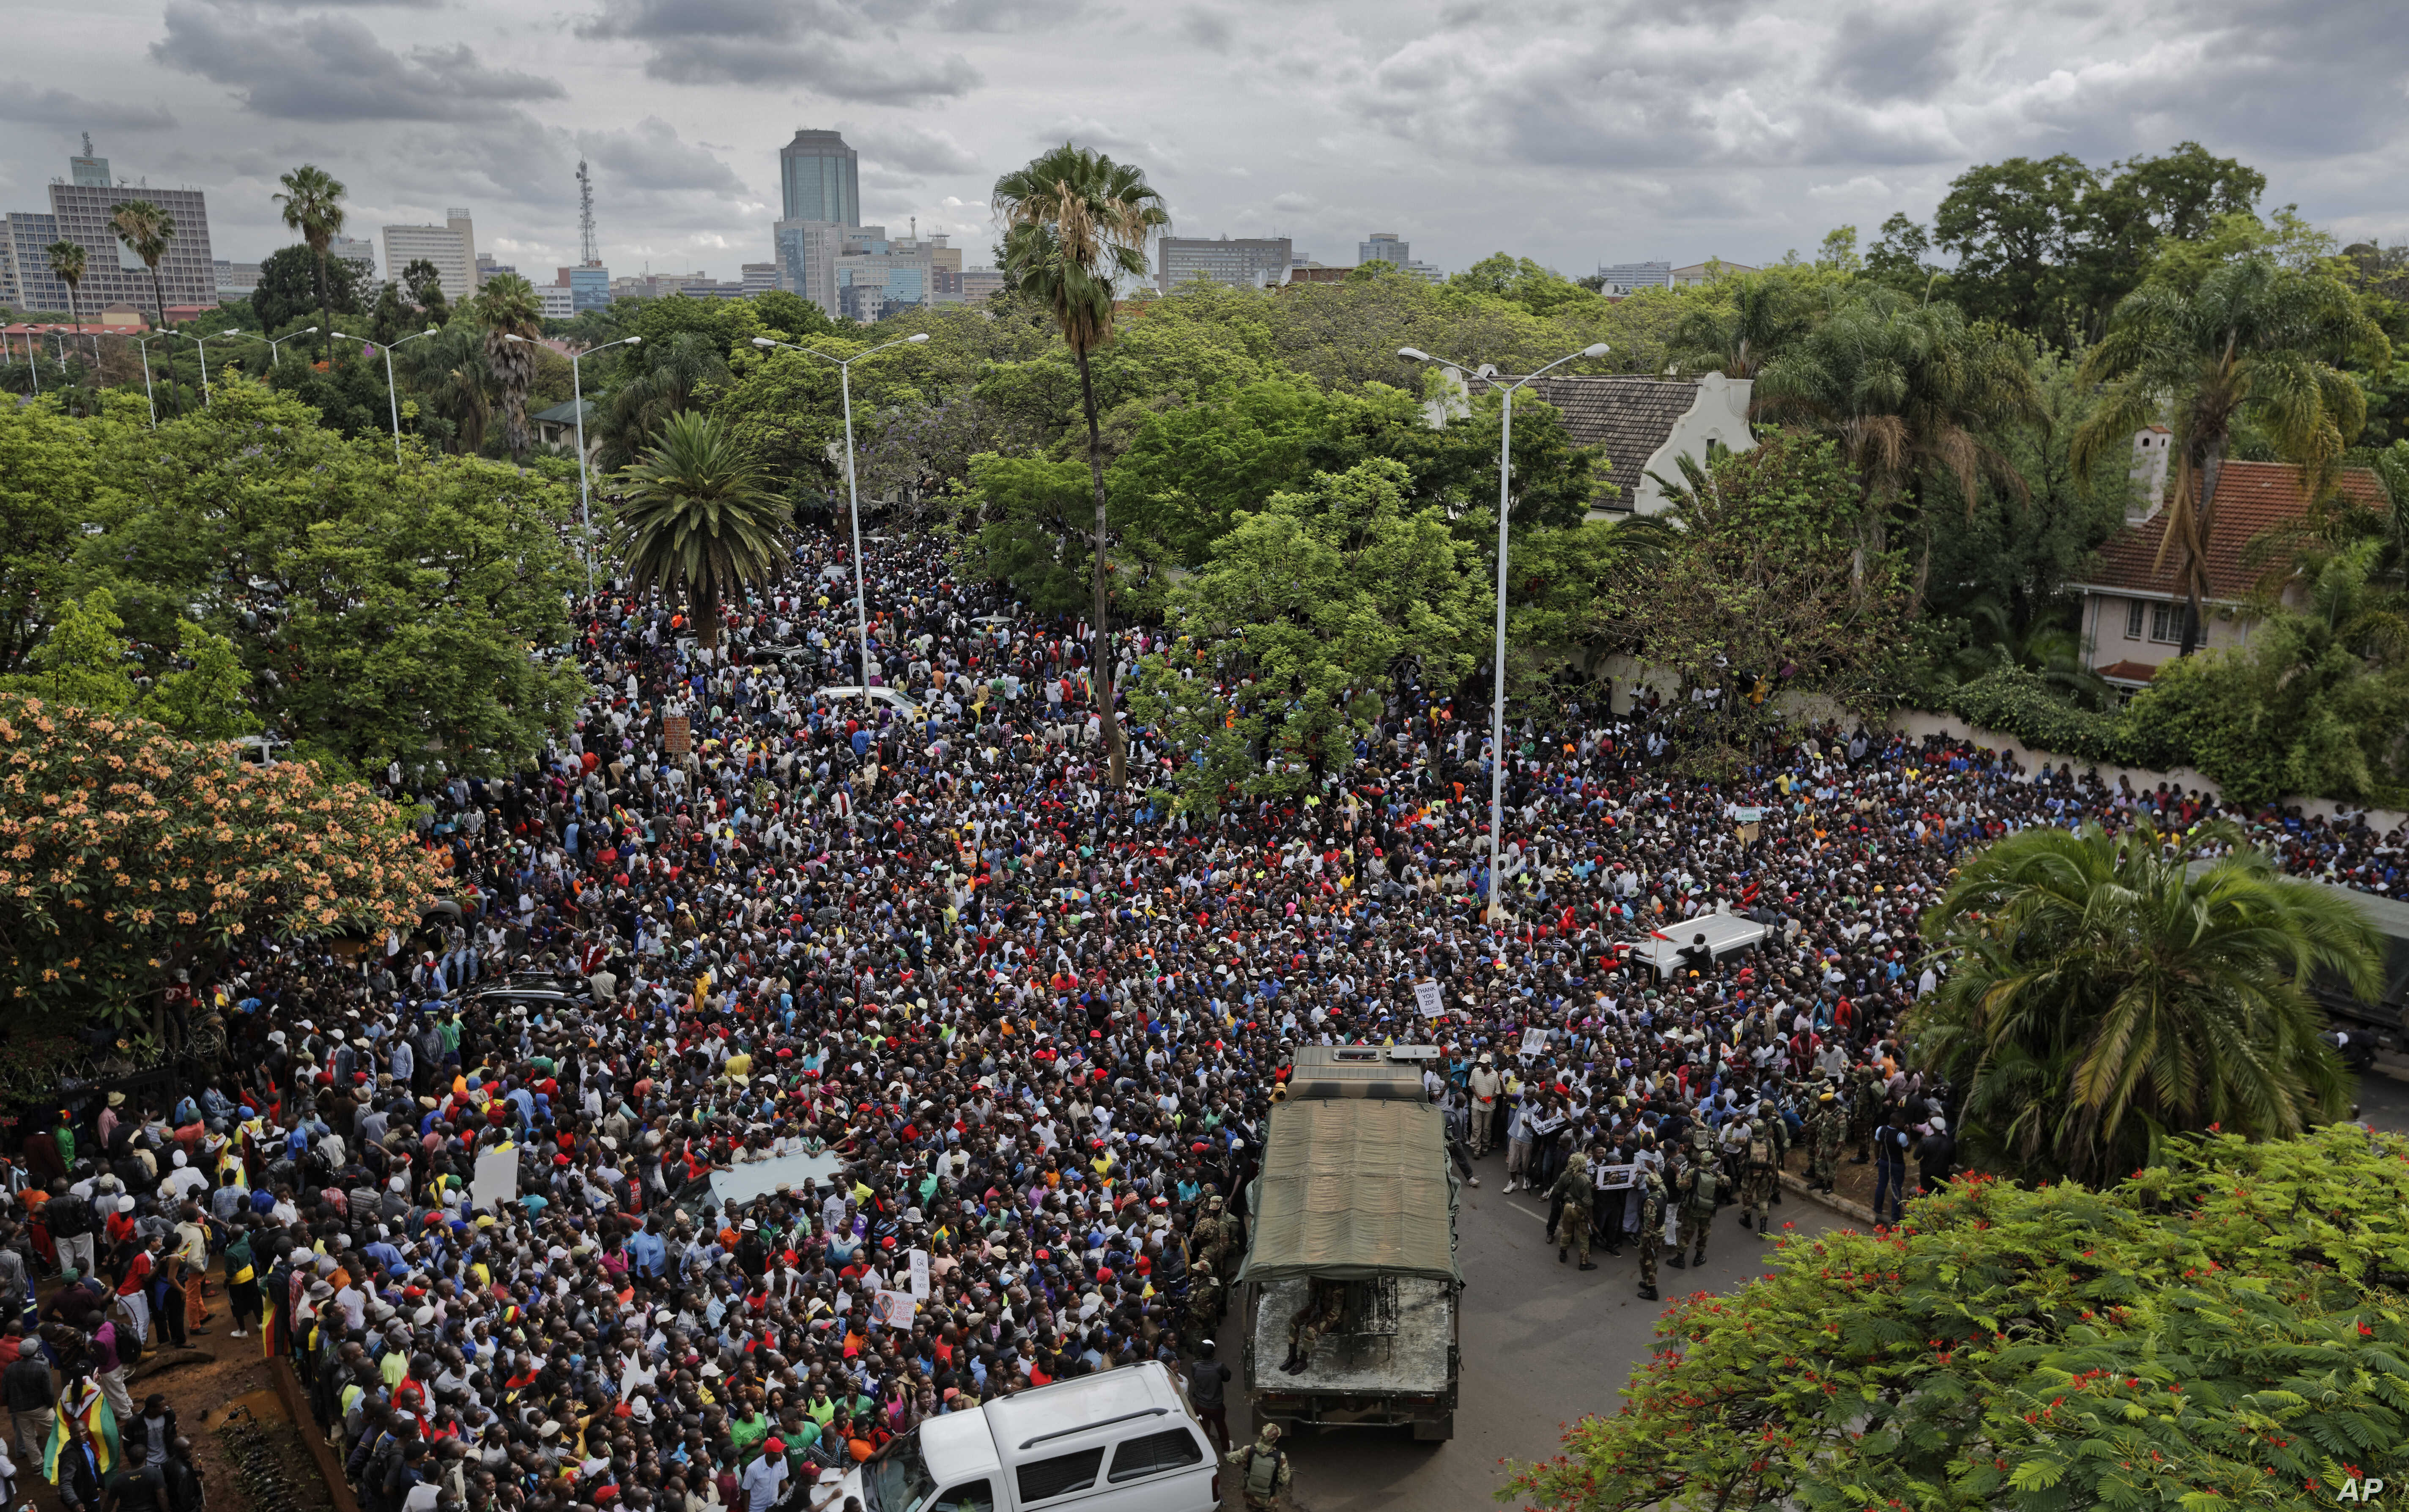 A crowd of thousands of protesters demanding President Robert Mugabe stands down gather behind an army cordon on the road leading to State House in Harare, Zimbabwe Saturday, Nov. 18, 2017.